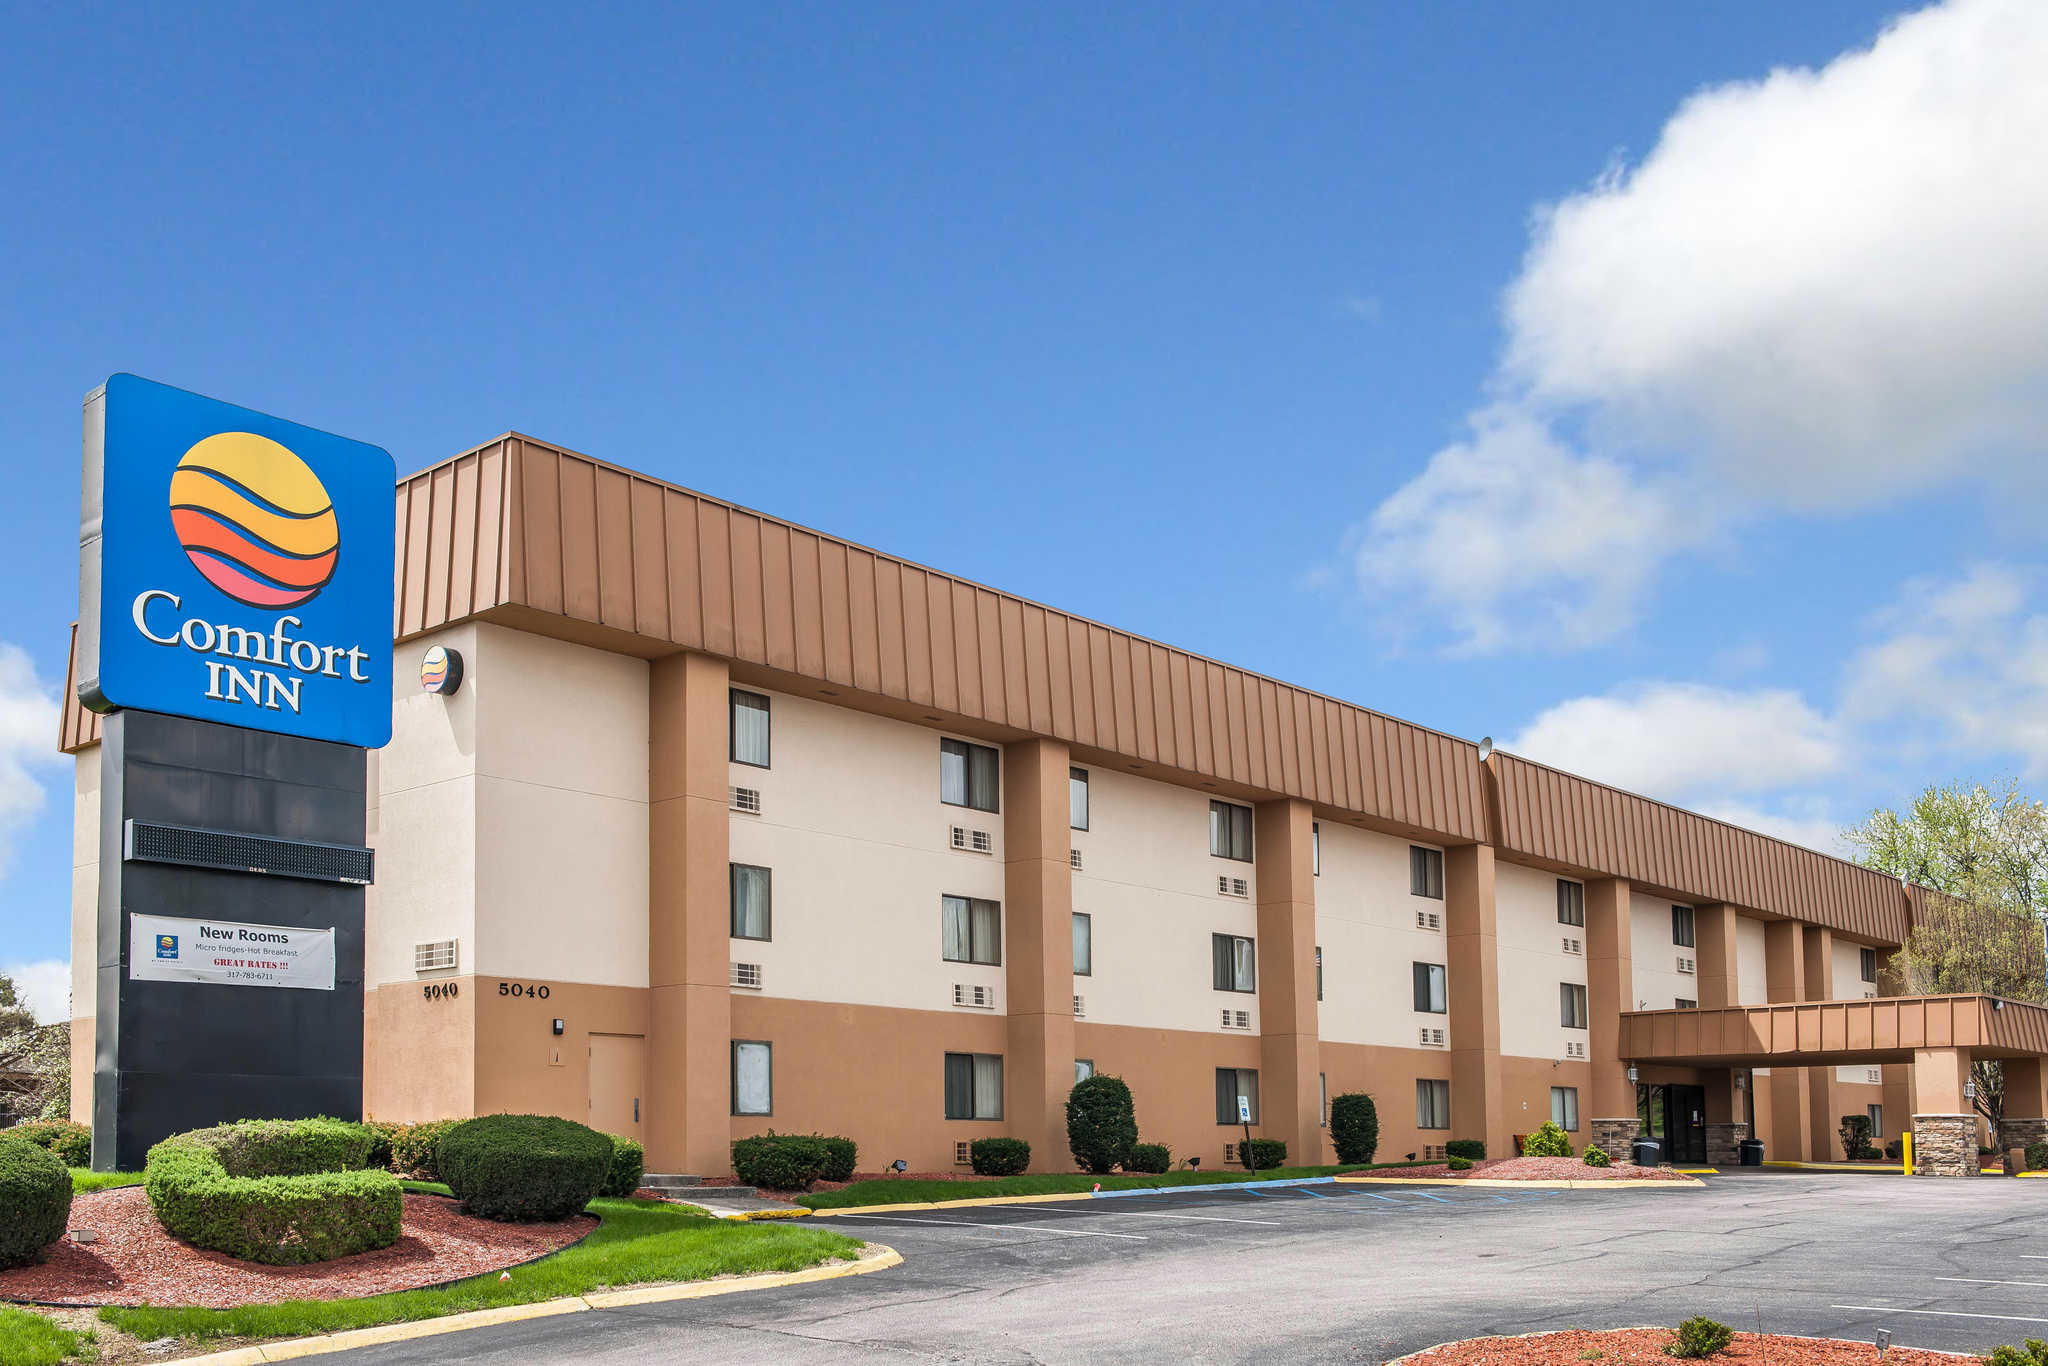 Find Comfort Inn hotels in Indianapolis, IN. With great amenities and our Best Internet Rate Guarantee, book your hotel in Indianapolis today.